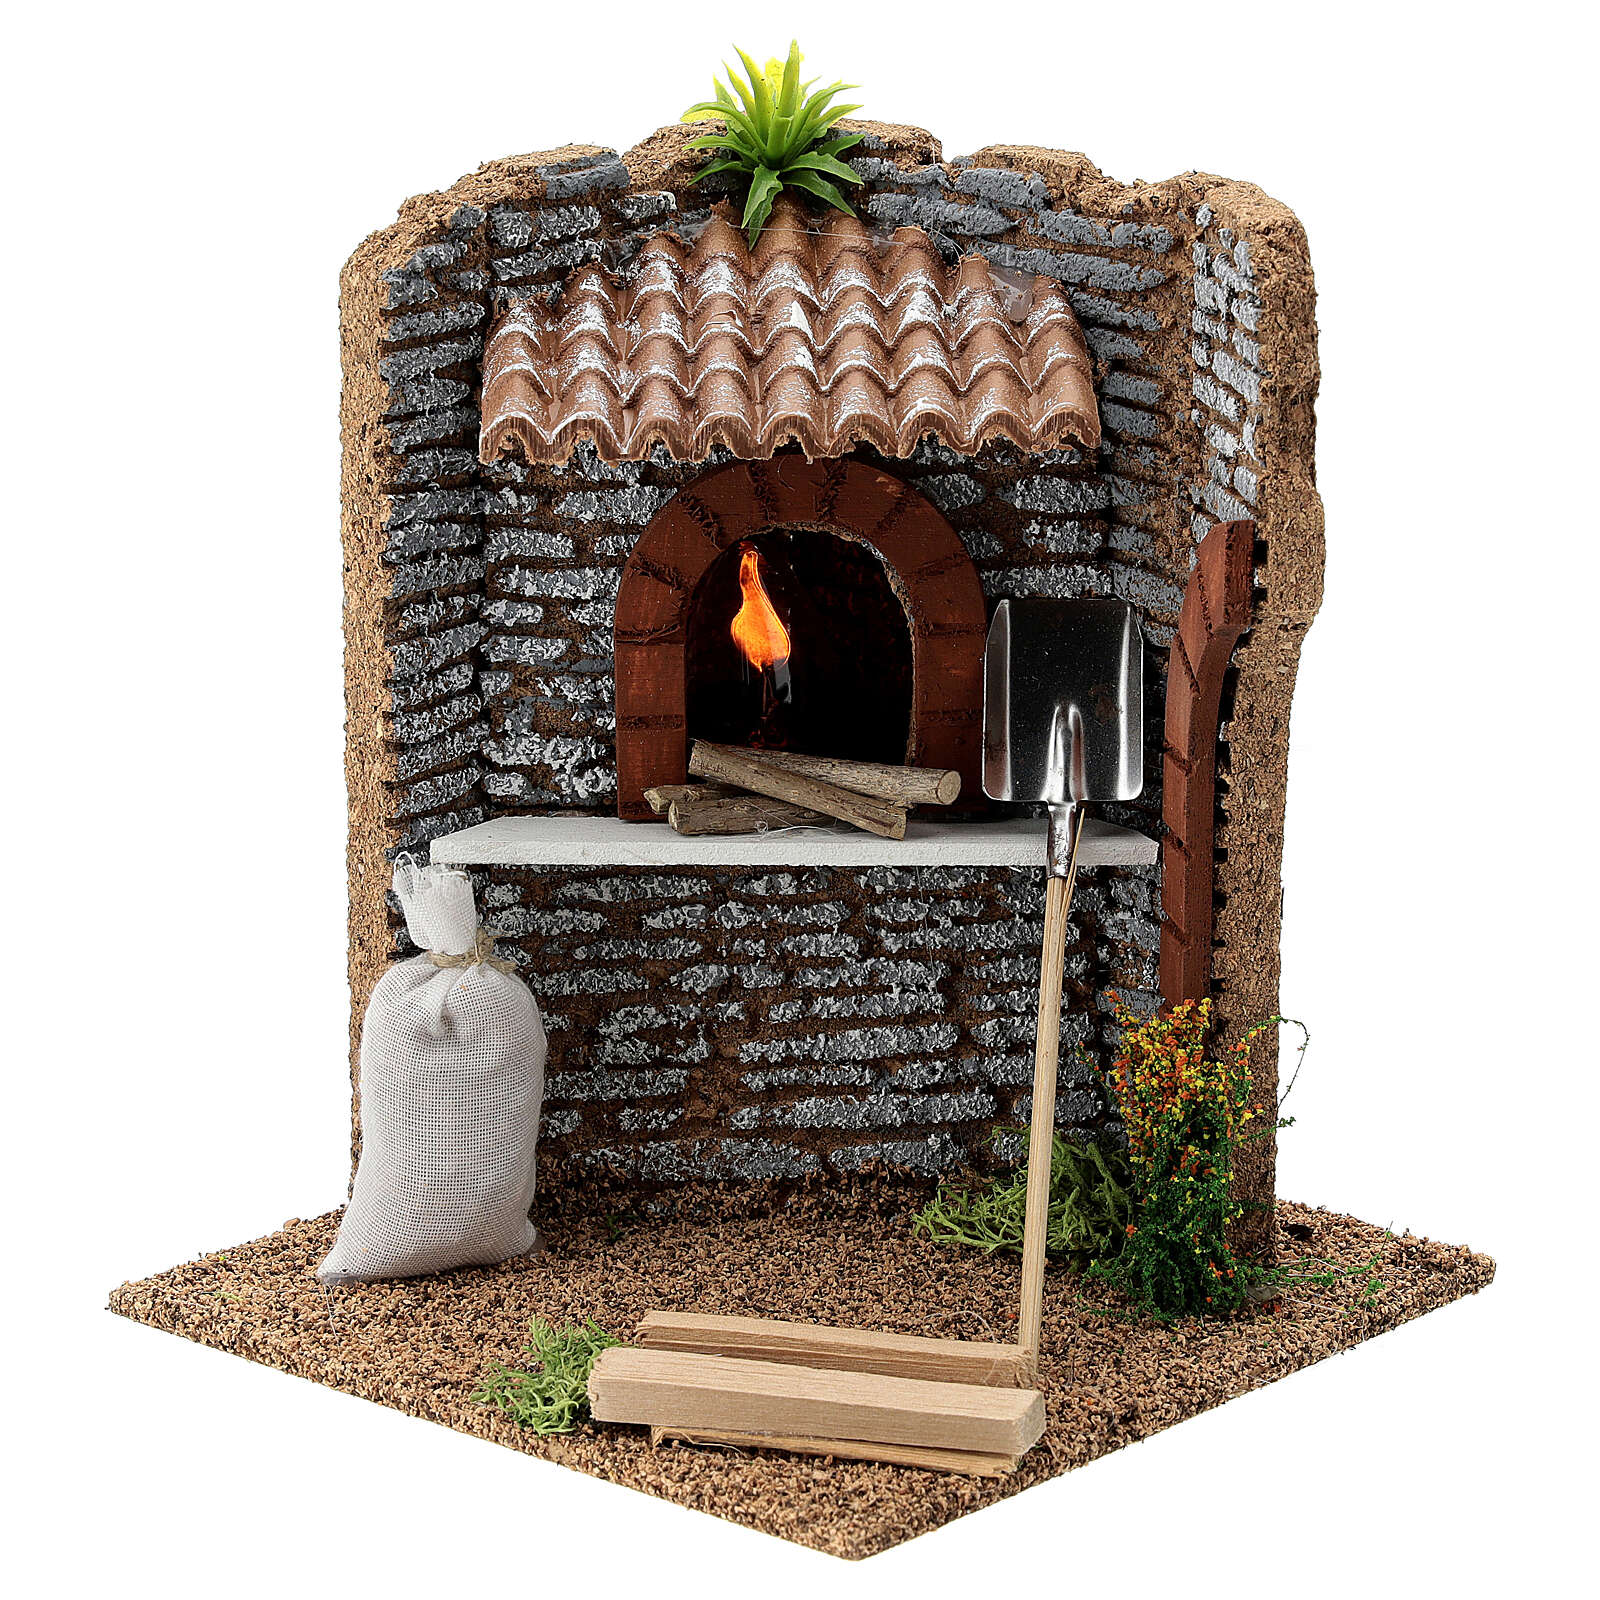 Corner brick oven figurine with LED flame, 15x15x15 cm 10-12 cm nativity 4